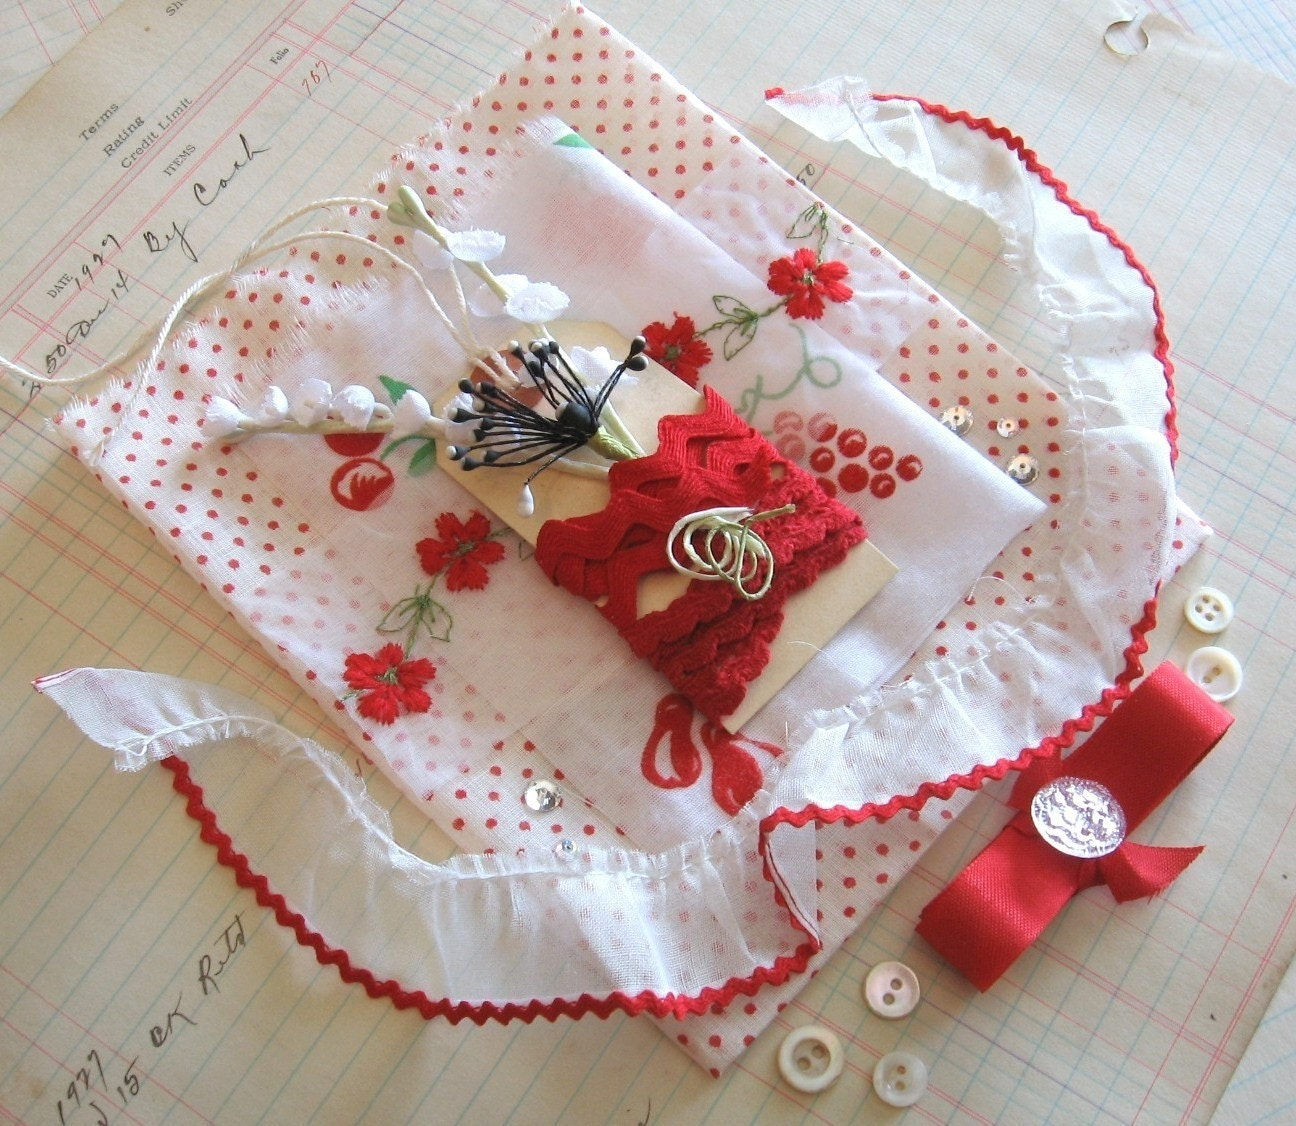 Rockabilly Red and White Vintage Crafting Set -- Polka Dot and Flocked Fabric, Seam Binding, Rick Rack and More